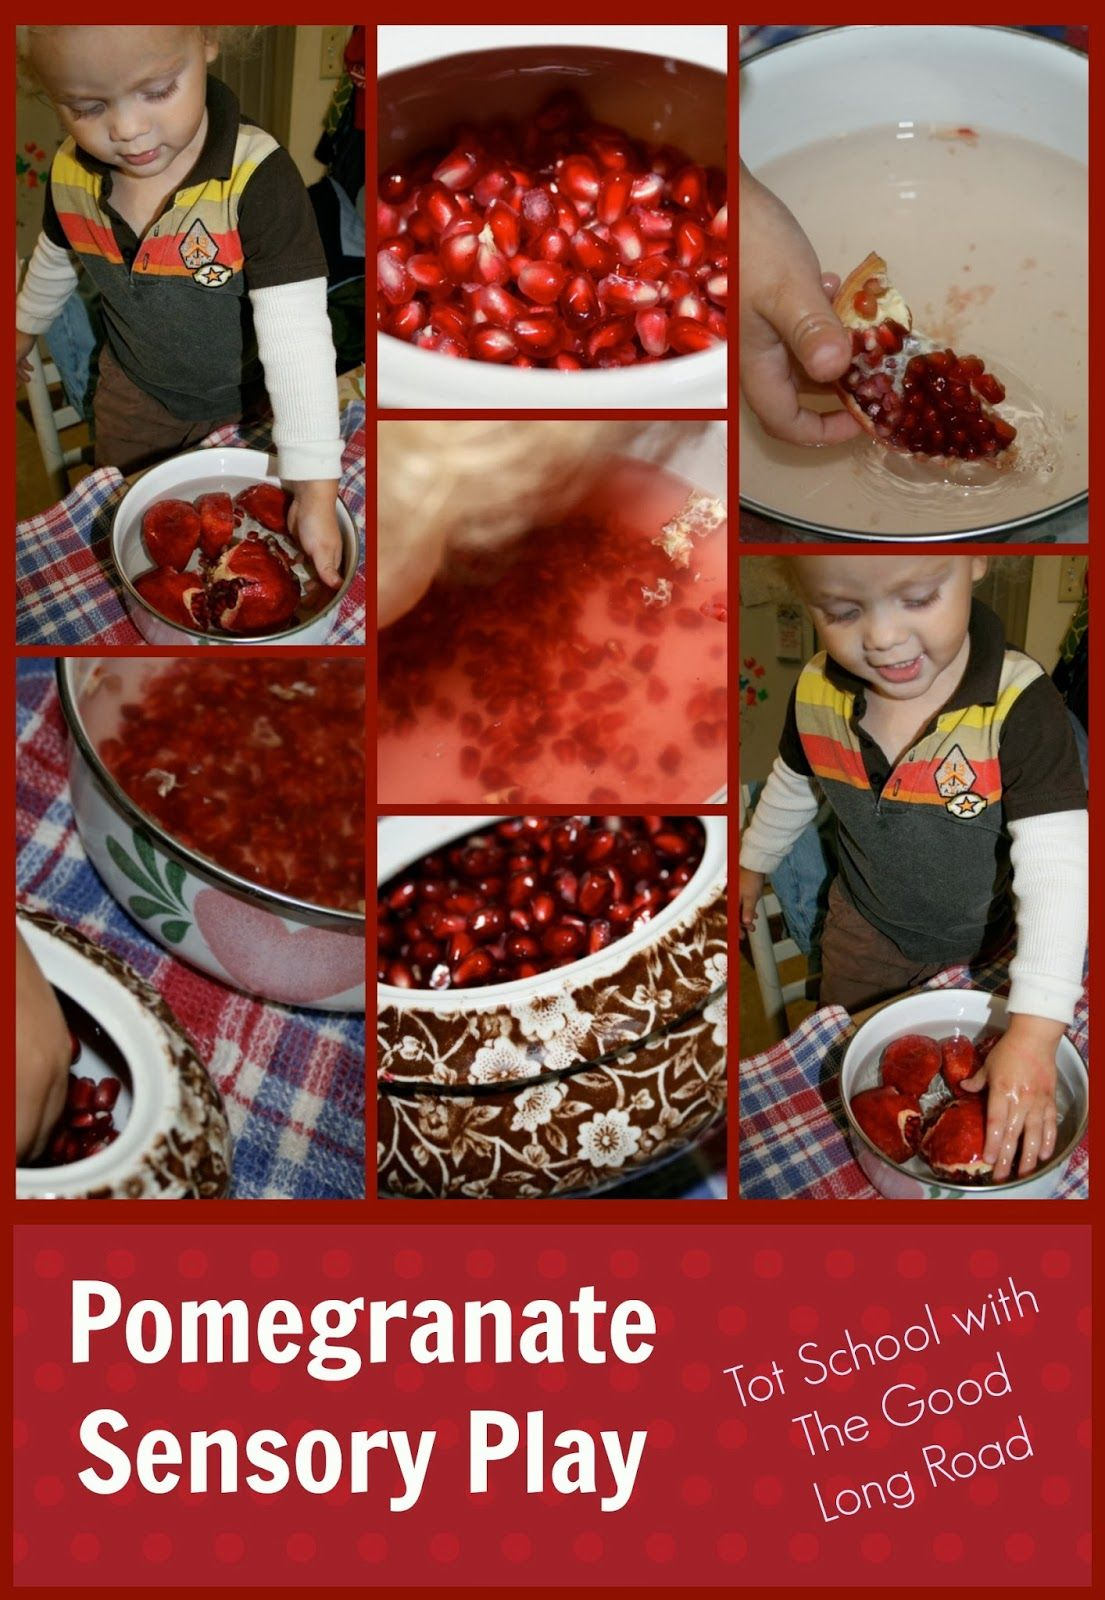 Taking Pomegranate Seeds Out Of The Pomegranate Is Such A Great Fine Motor Activity